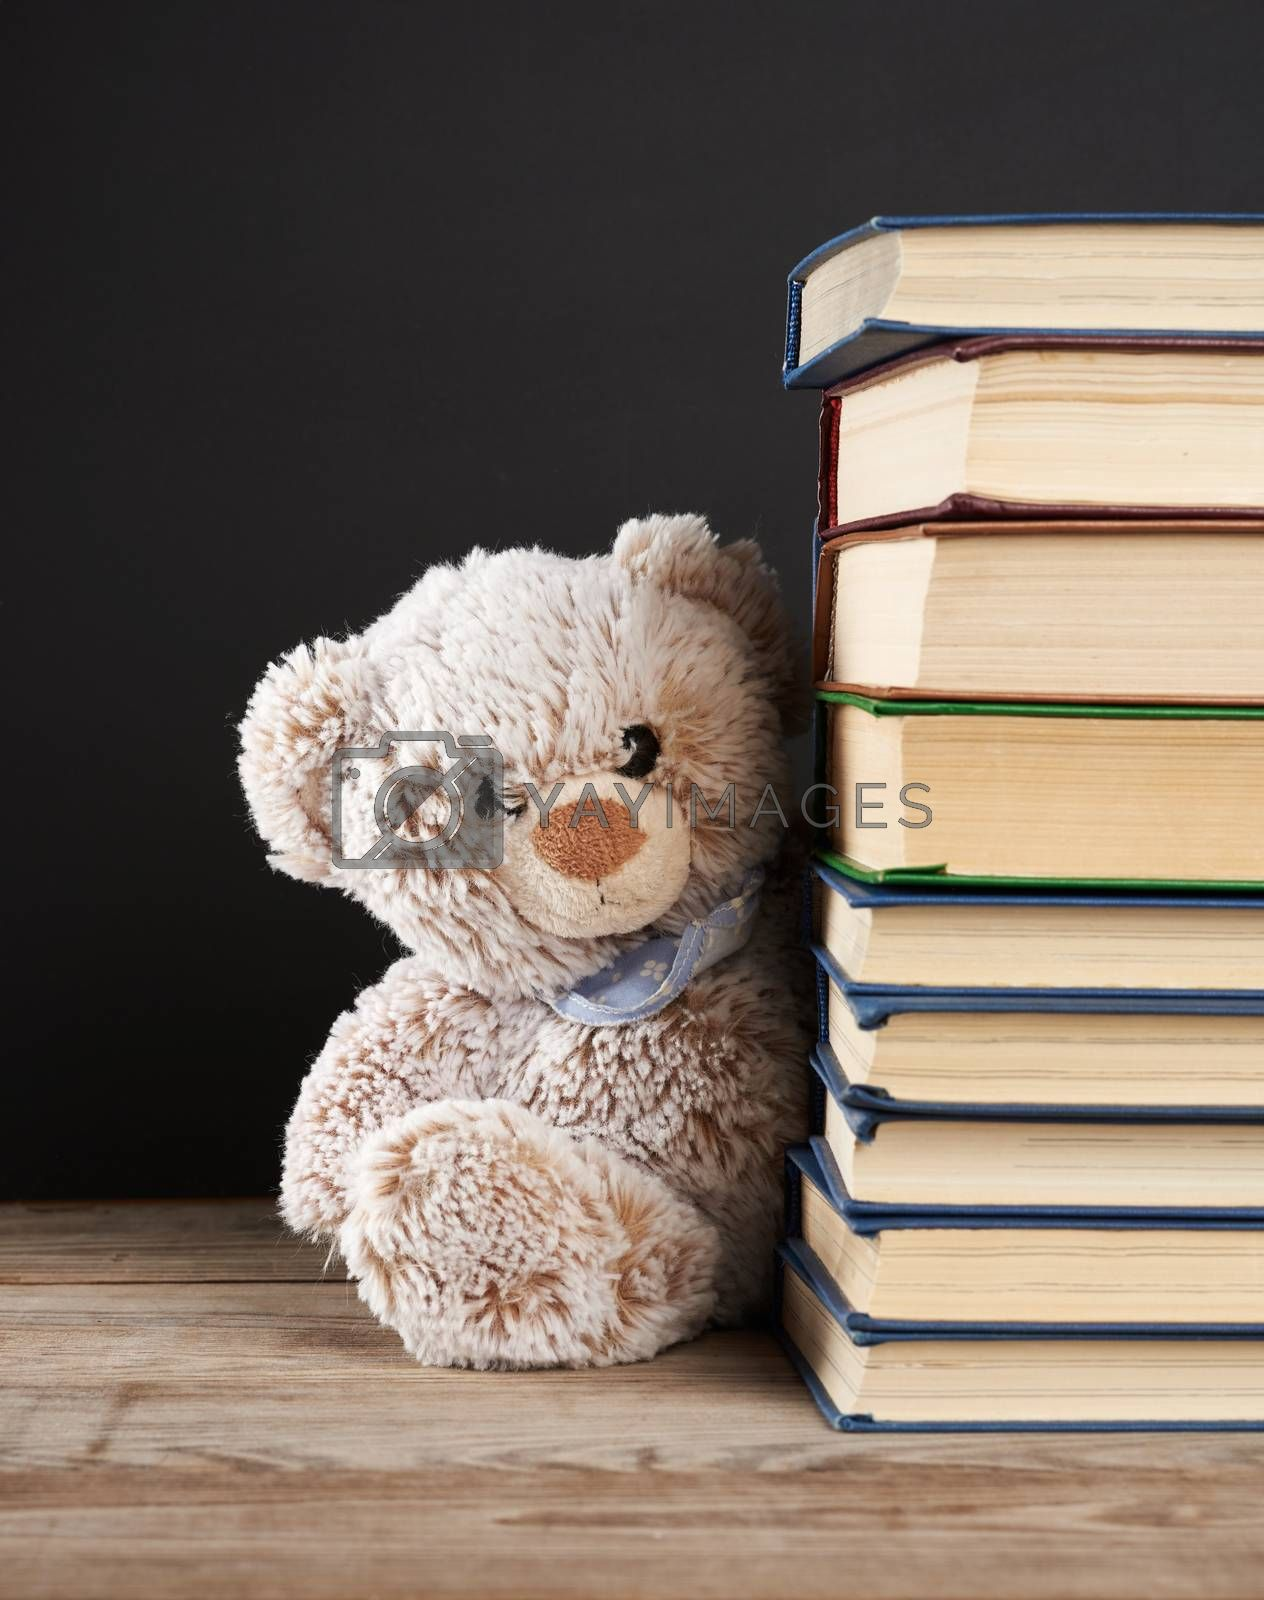 teddy bear peeking out from behind a stack of books, black background, back to school